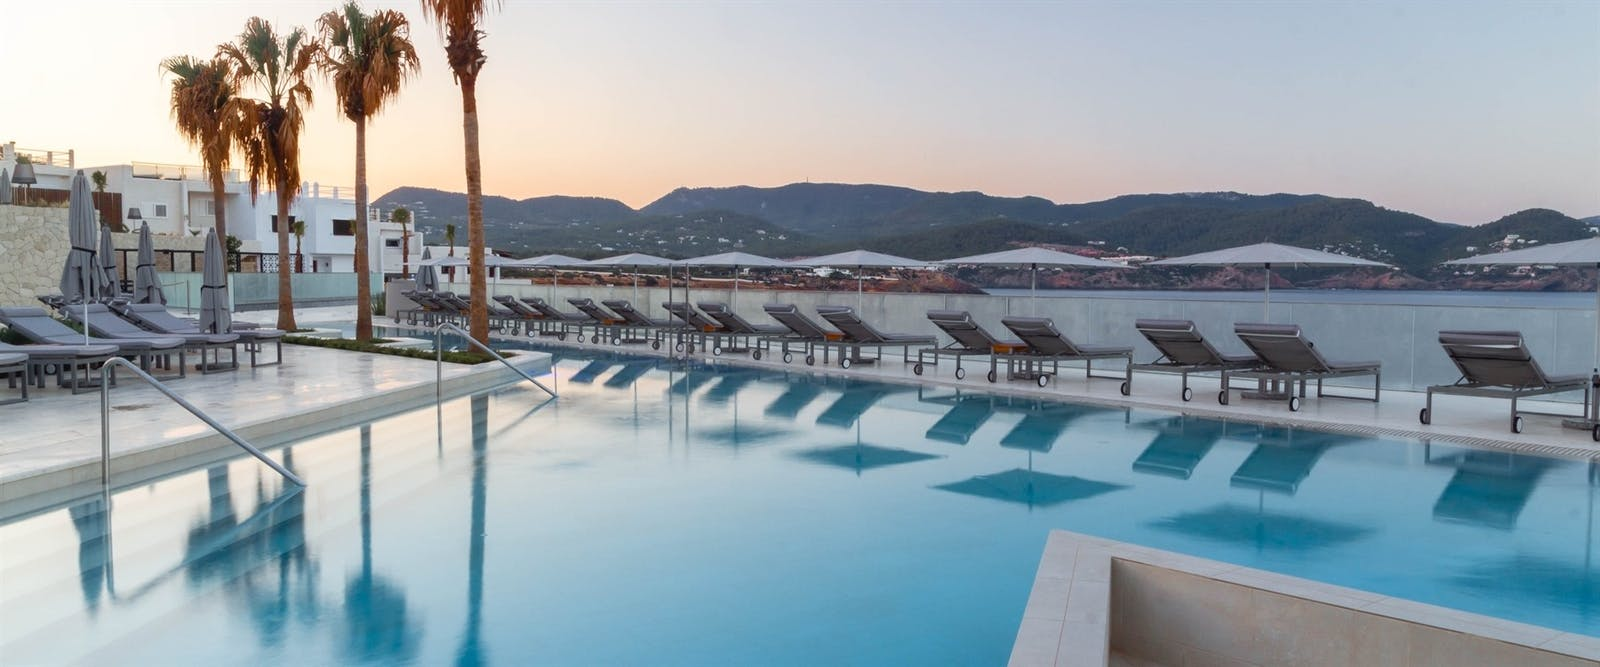 Infinity Pool at Seven Pines Resort, Ibiza, Spain